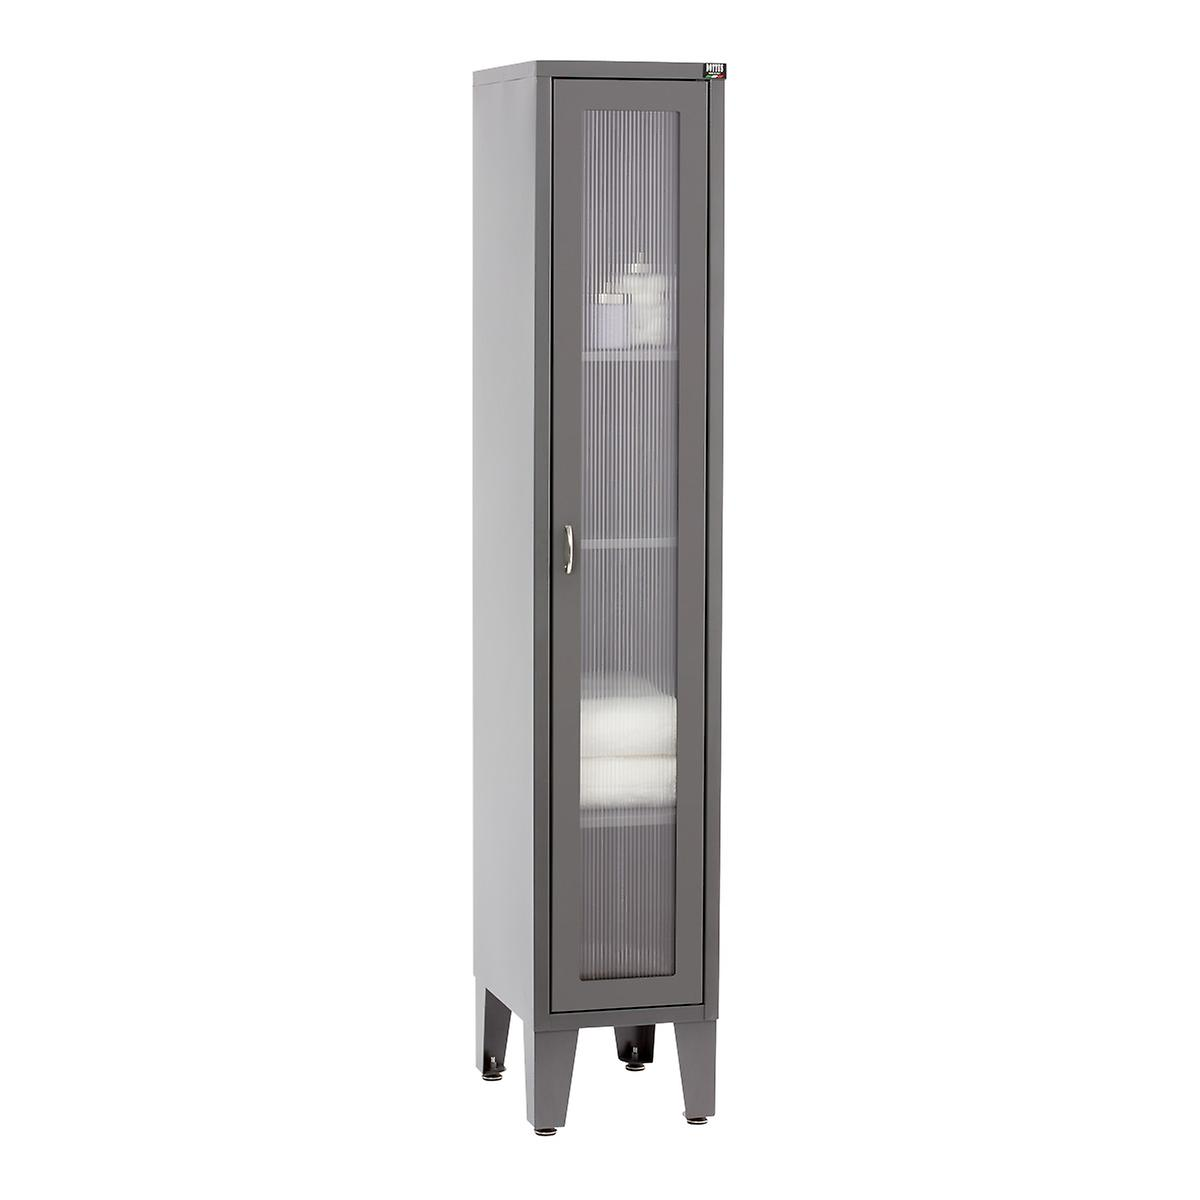 Anthracite Tall Mobiletto Cabinet